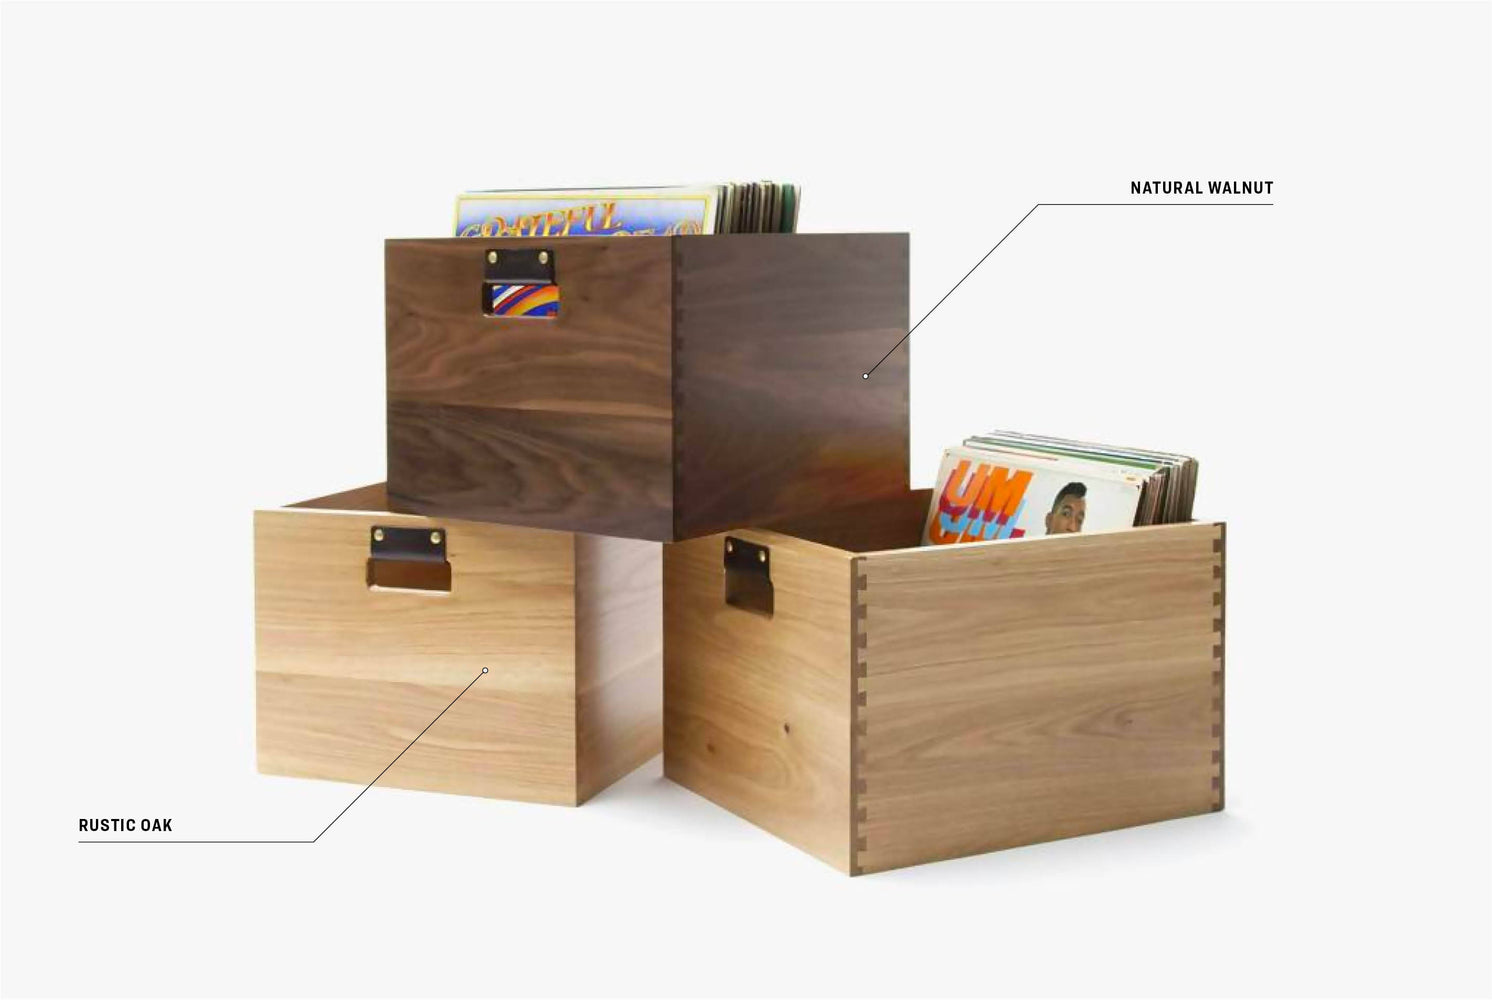 Symbol Audio Dovetail Record Crate - Both finishes stacked with records inside